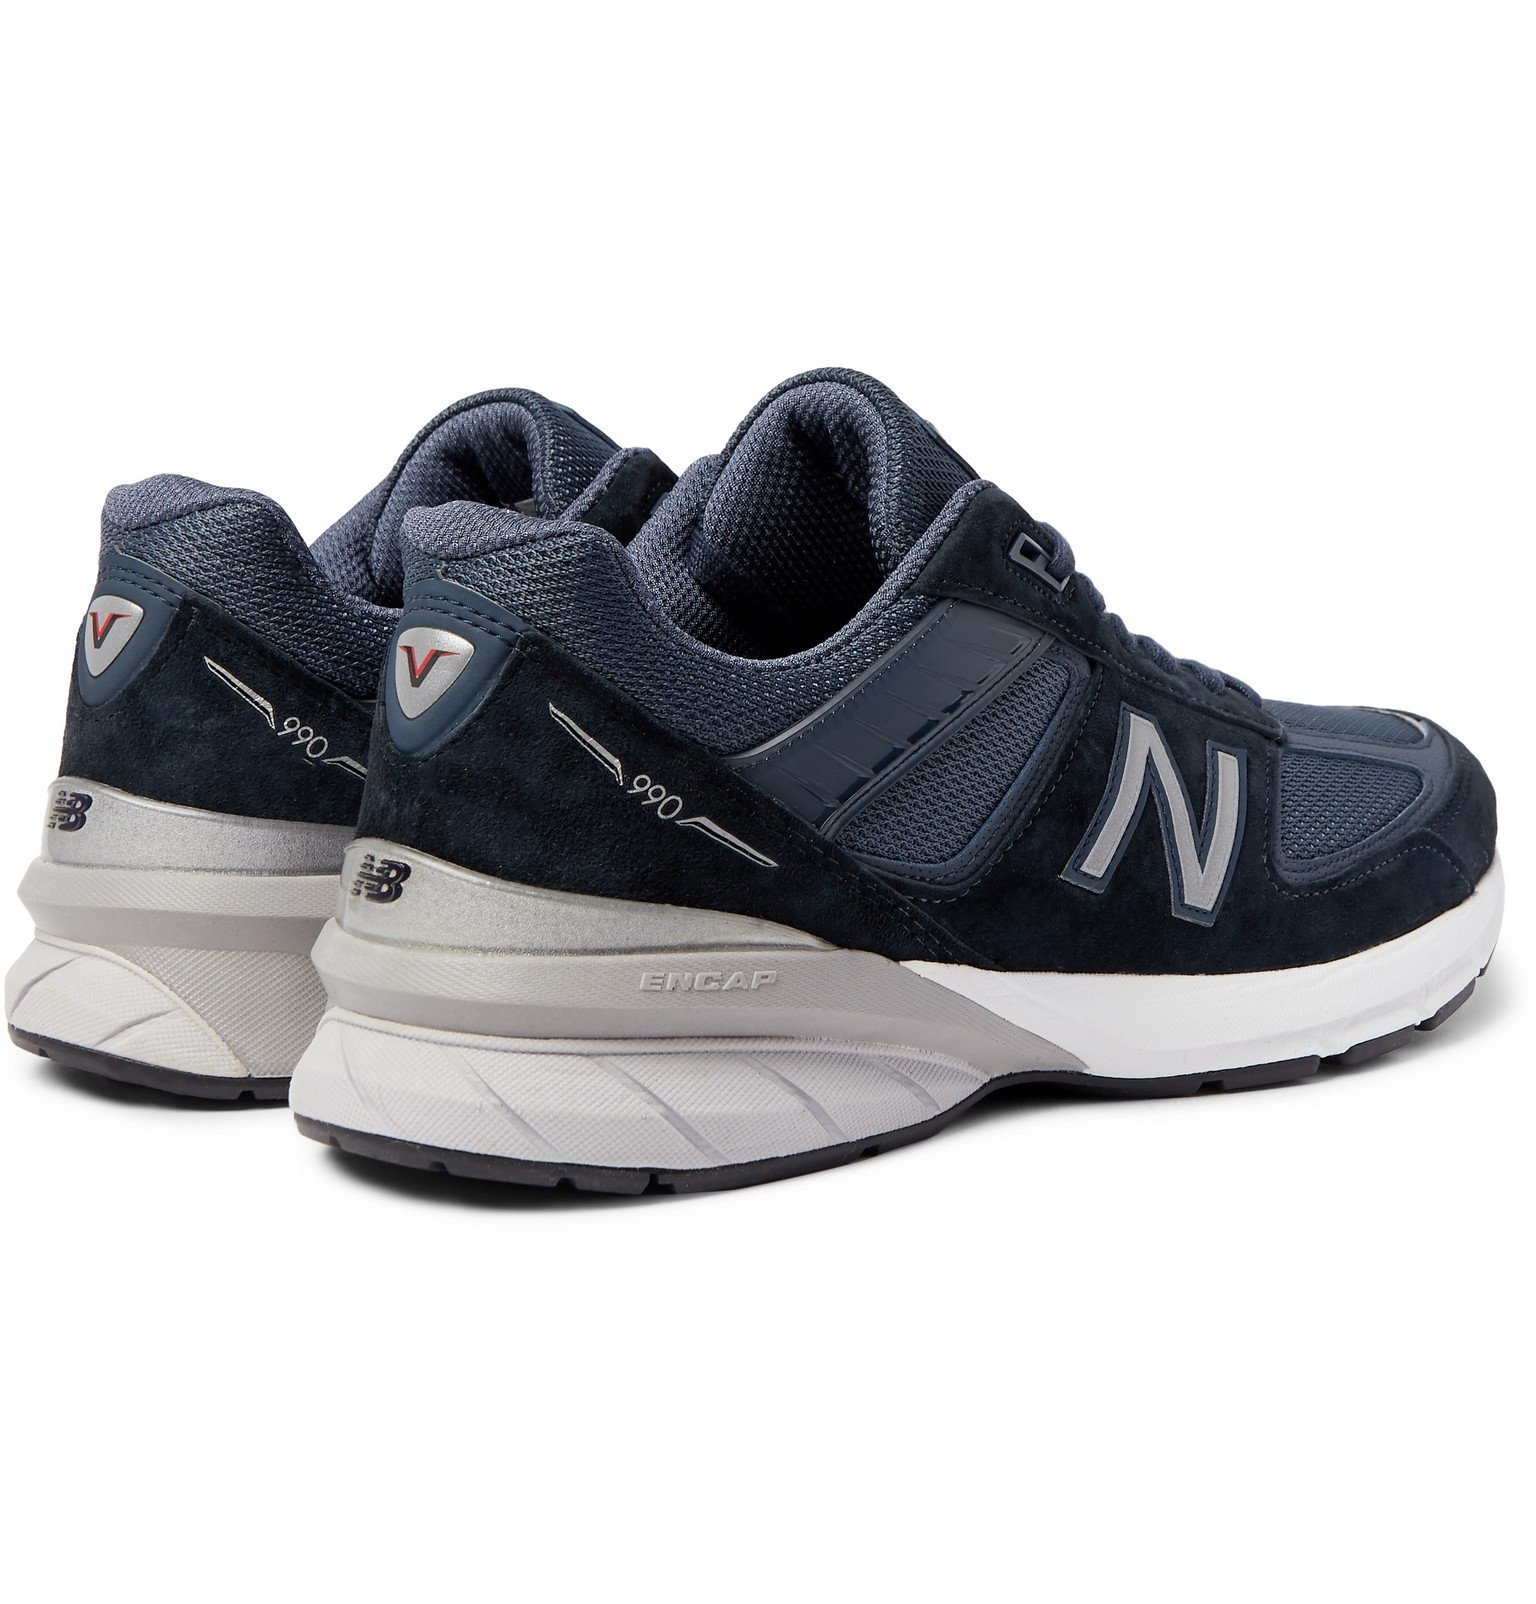 New Balance - M990V5 Suede and Mesh Sneakers - Blue